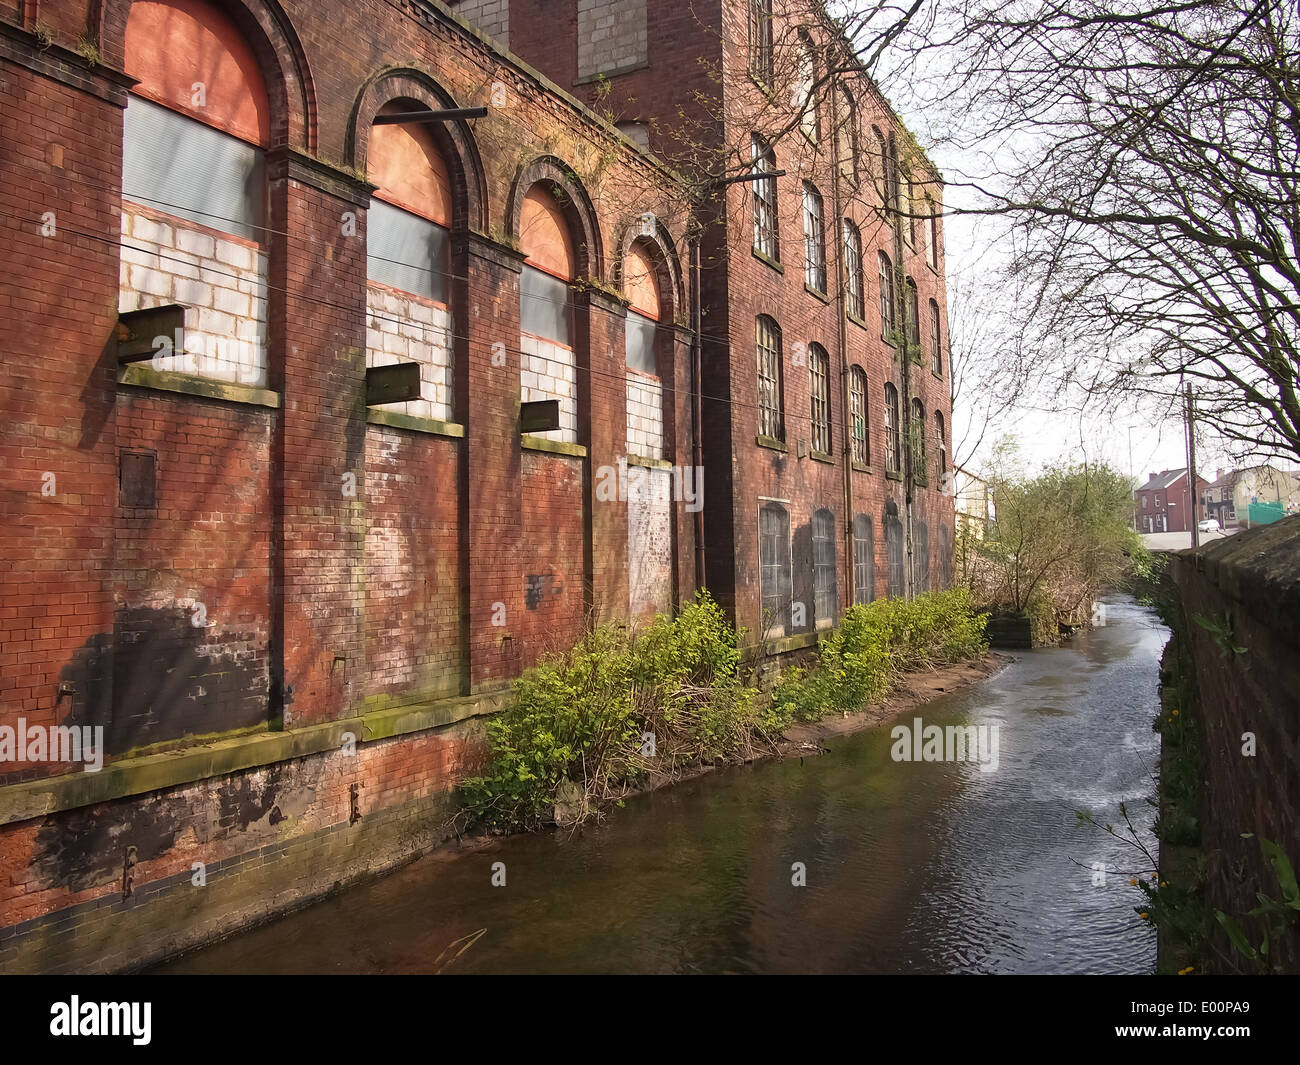 Lodge Mill and the river irk in Middleton, Greater Manchester, EnglandStock Photo